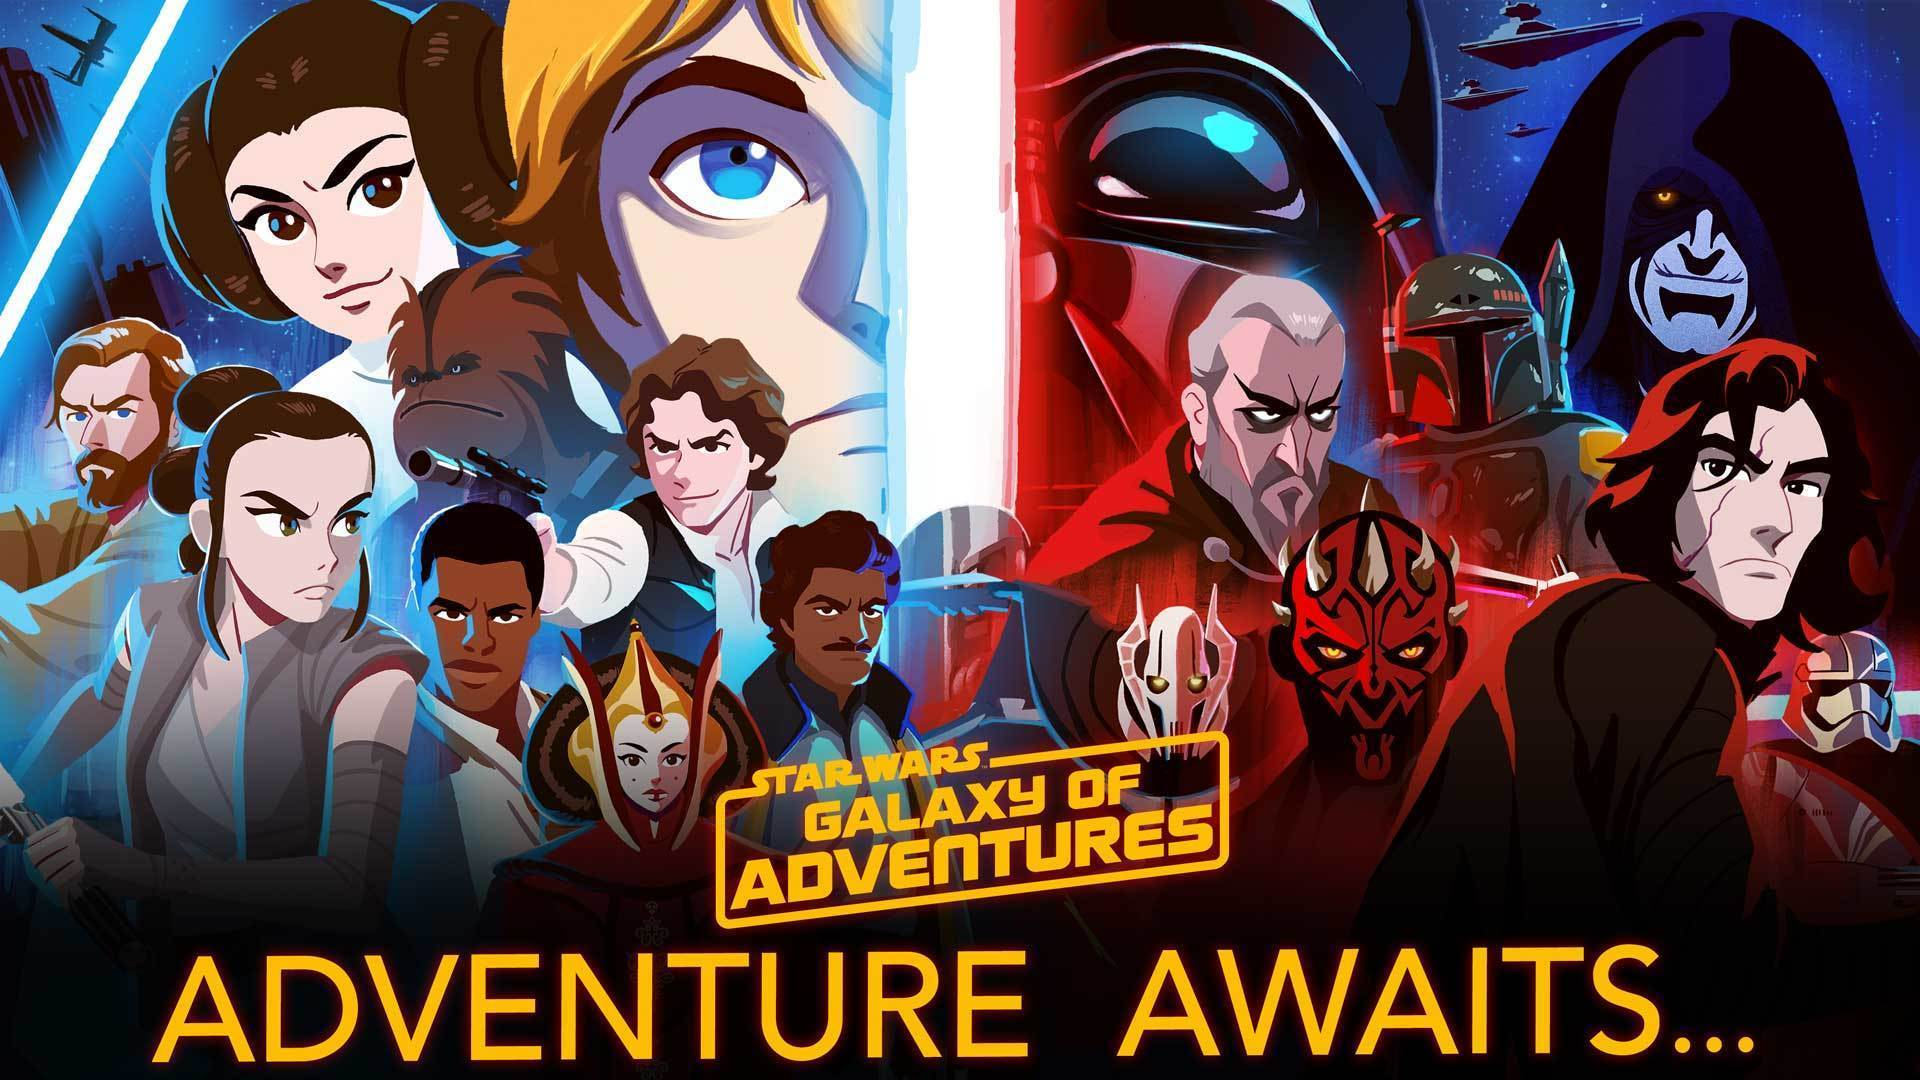 Adventure Awaits | Star Wars Galaxy of Adventures